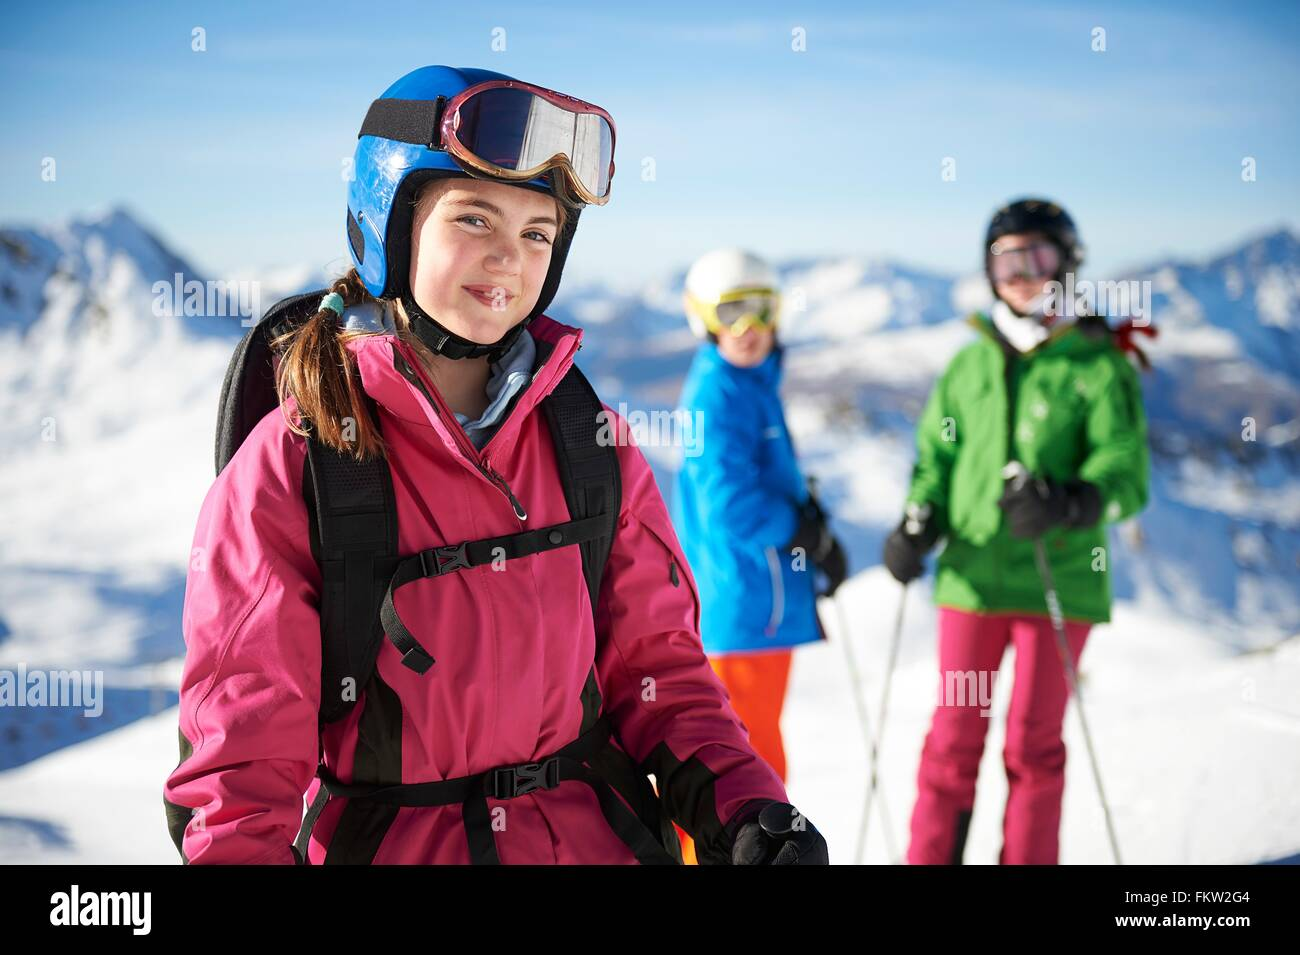 Young skiers on skiing trip, Les Arcs, Villaroger, Savoie, France - Stock Image